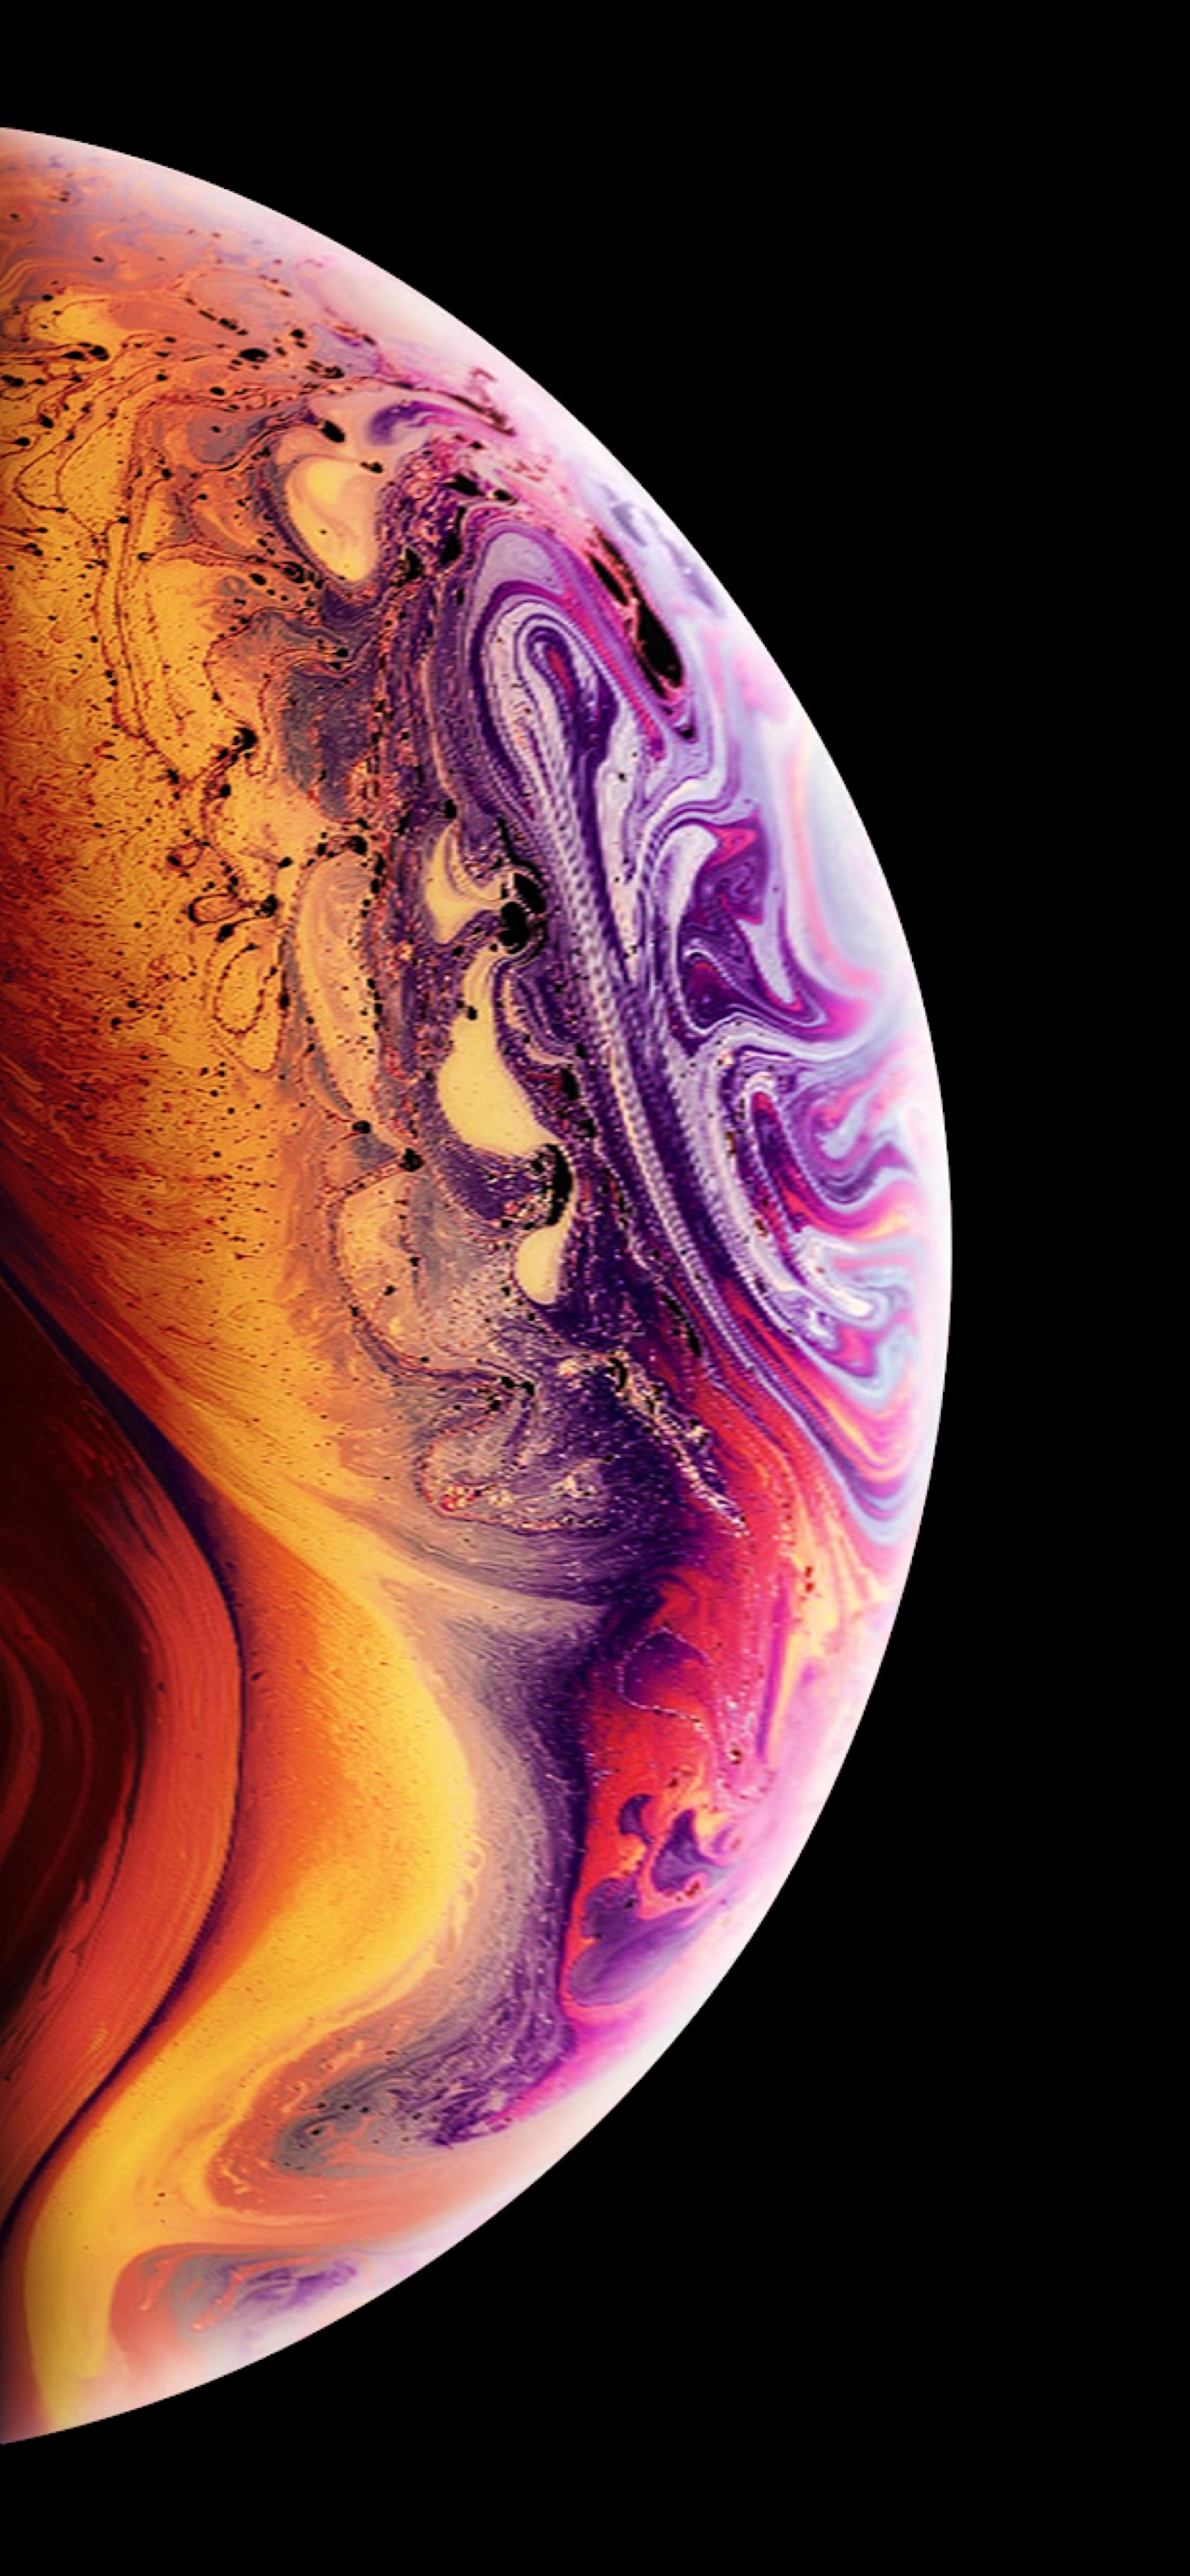 New Iphone Wallpaper For Iphone Xs Jpg 1 892 4 096 Pixels Galaxy Wallpaper Wallpaper Iphone Lukisan Galaksi